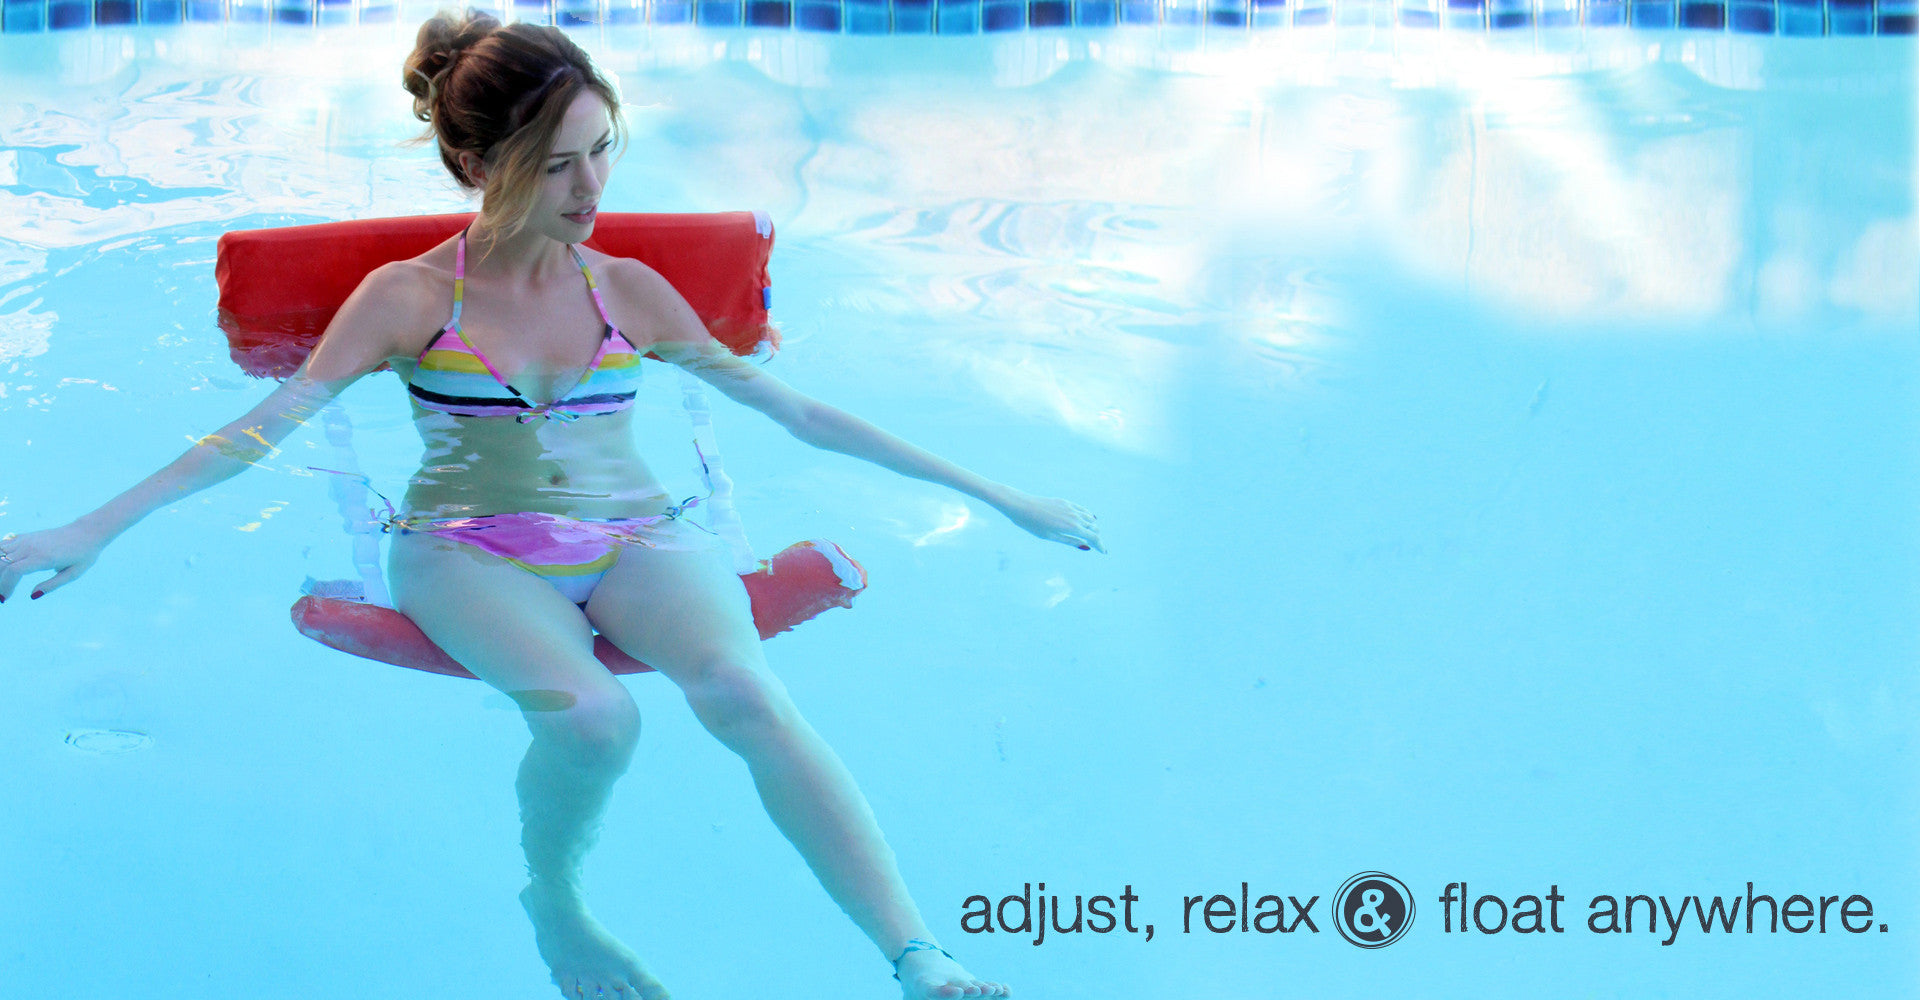 Adjust, relax & float happy Just Add Noodles Noodle float chair